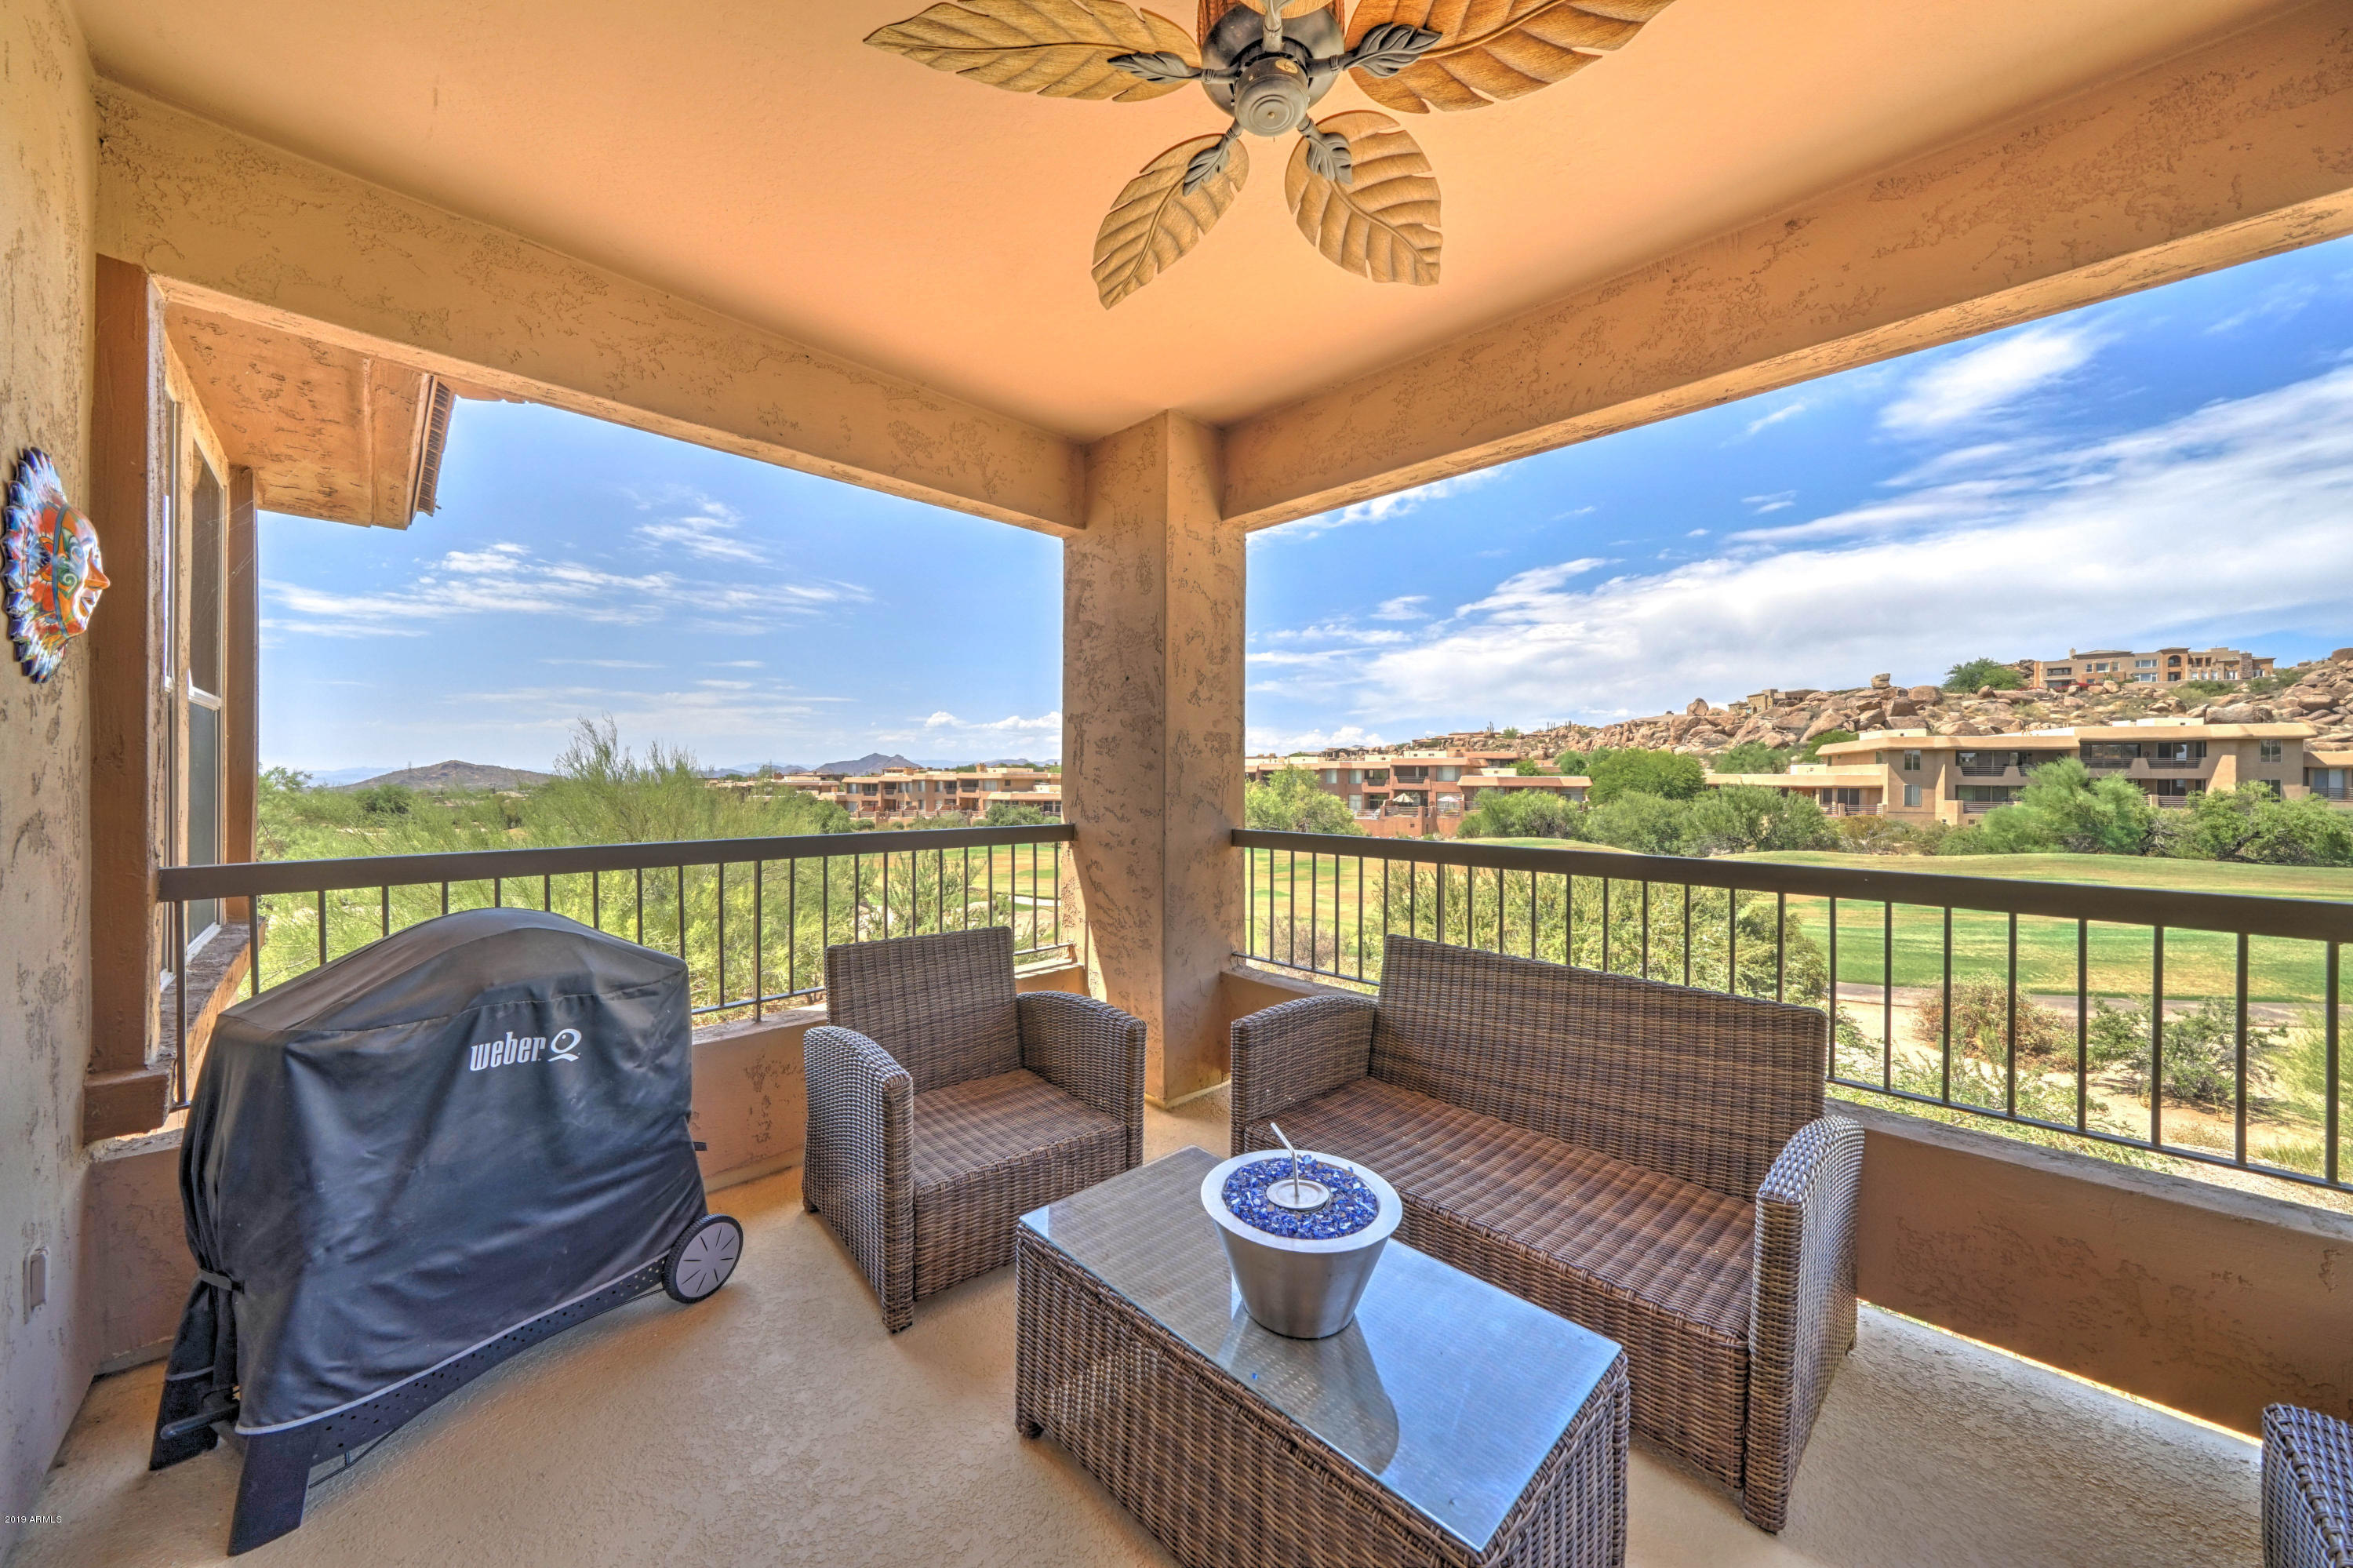 MLS 5949896 10260 E WHITE FEATHER Lane Unit 2013 Building 5, Scottsdale, AZ 85262 Scottsdale AZ Private Pool